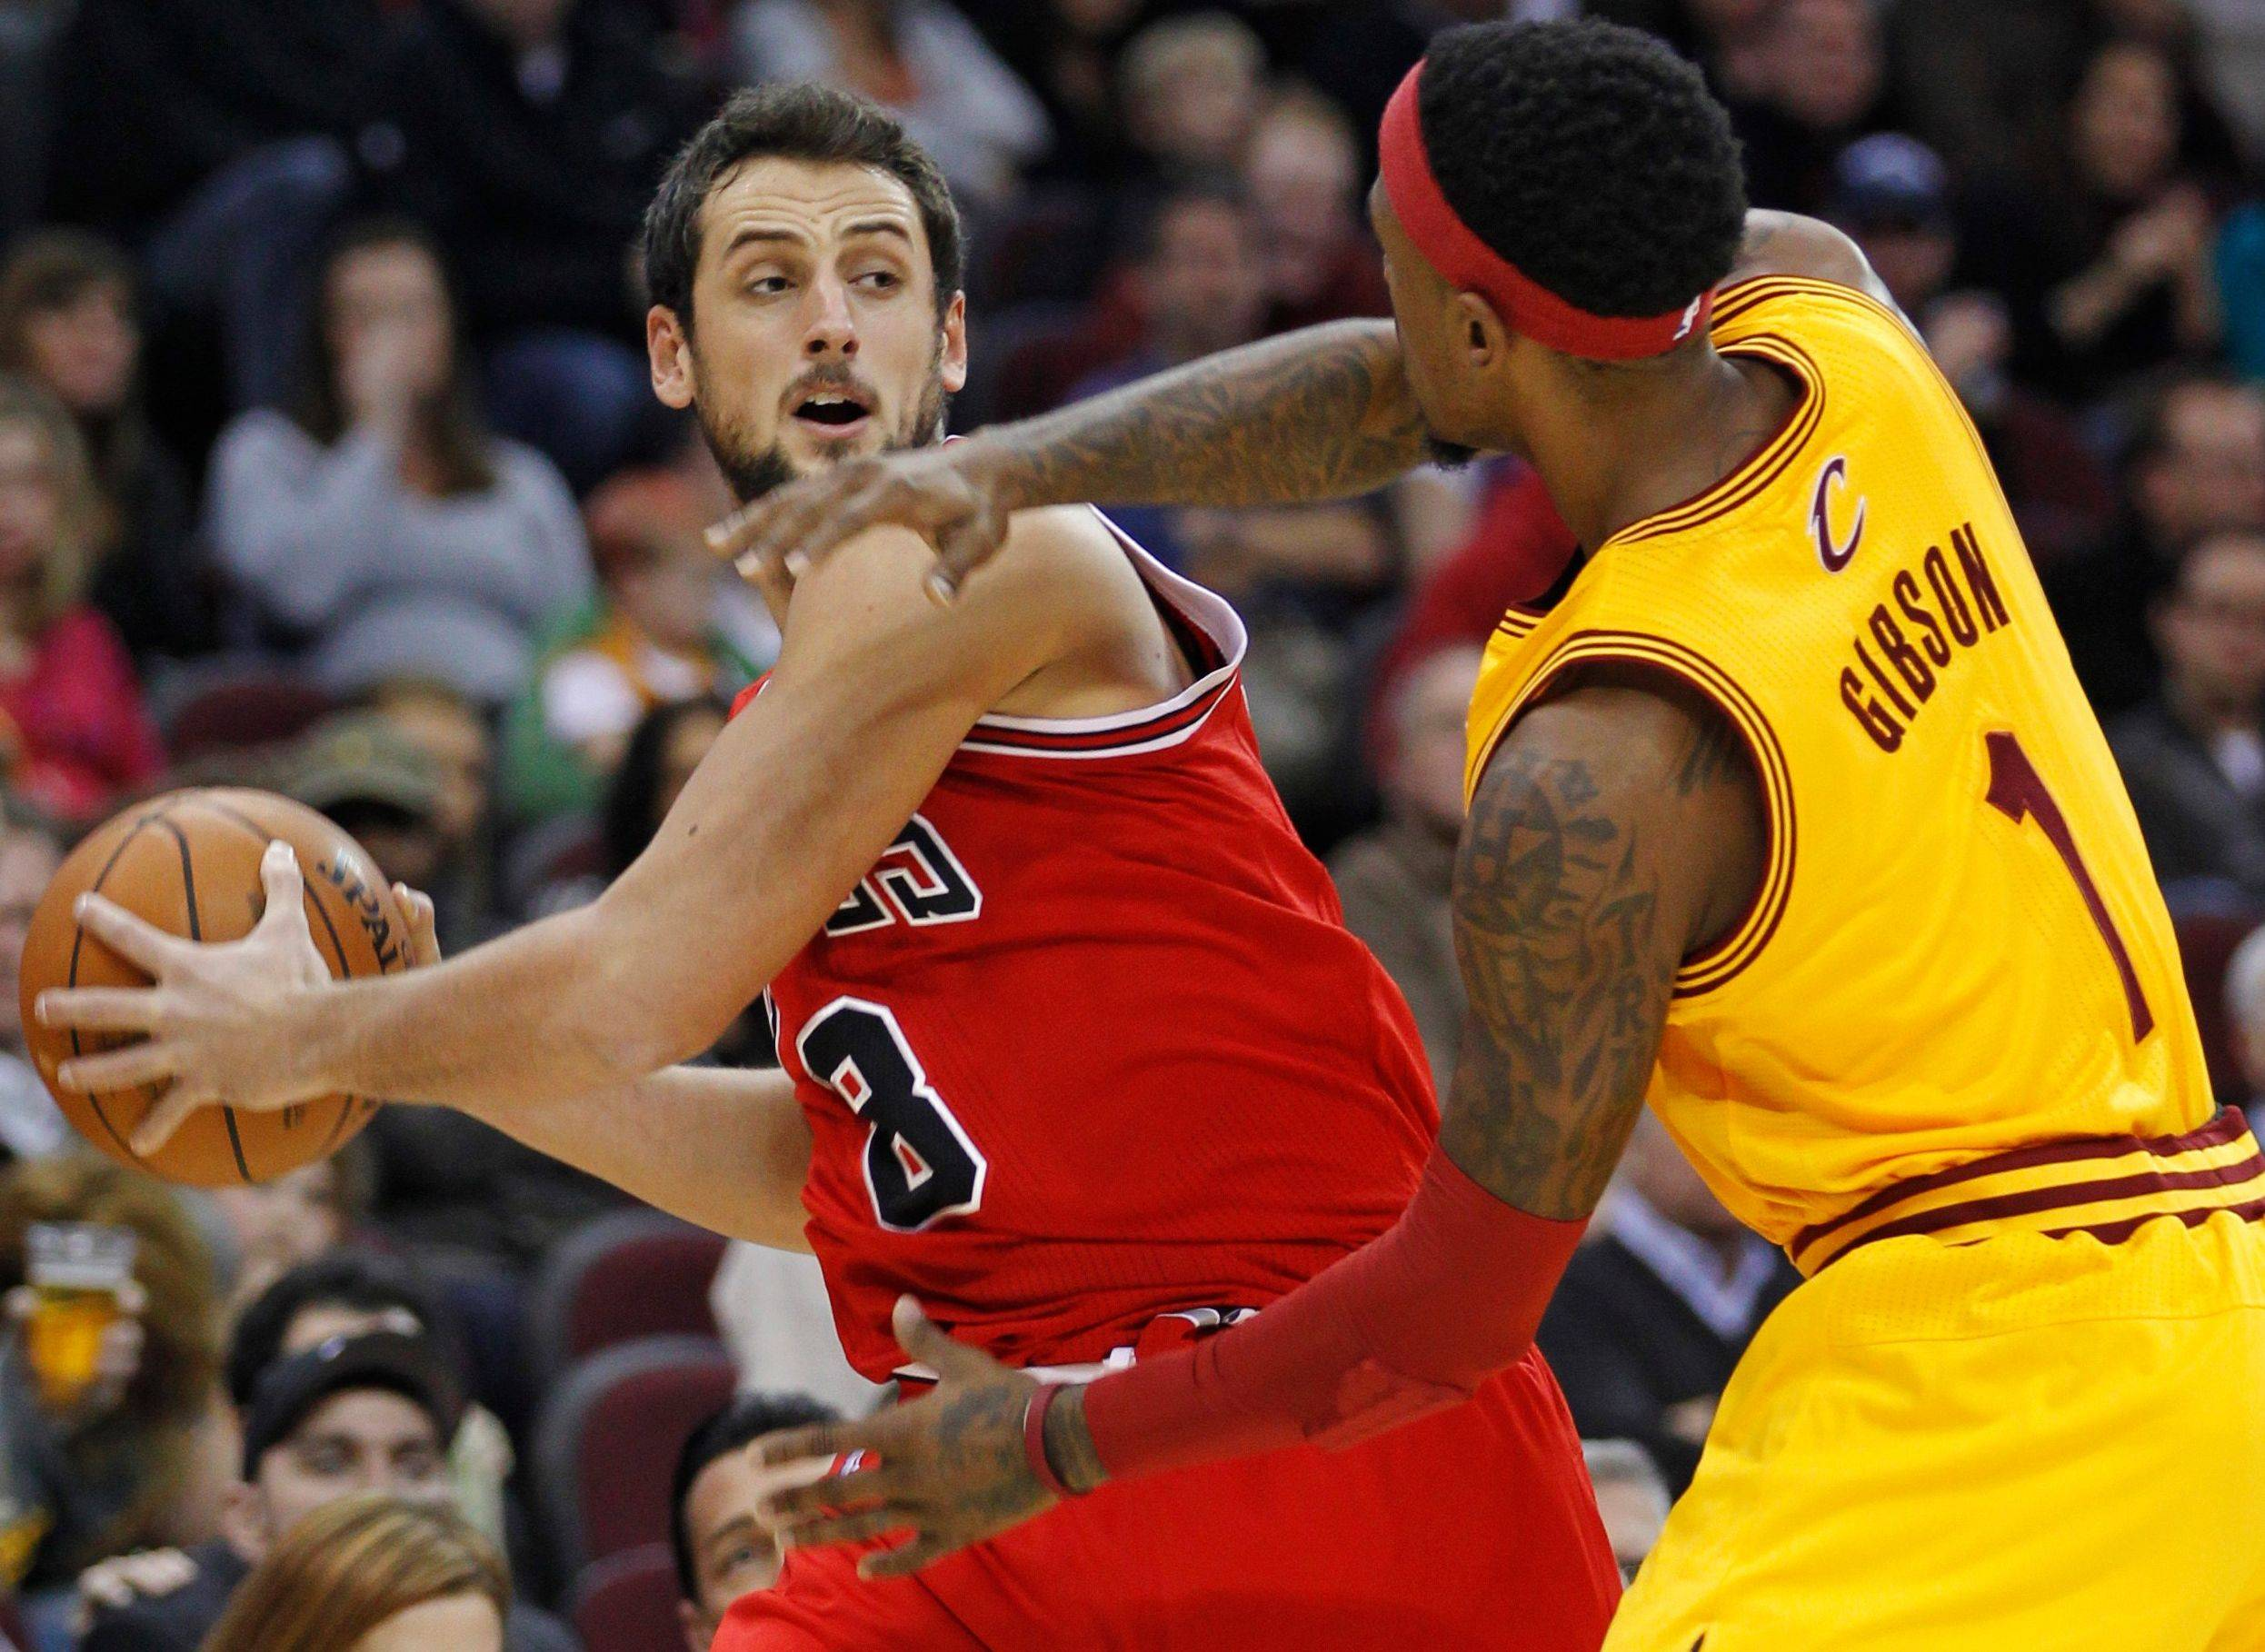 Marco Belinelli is pressured by Cleveland�s Daniel Gibson on Wednesday. Belinelli scored a season-high 23 points and hit 7 of 15 field goals.